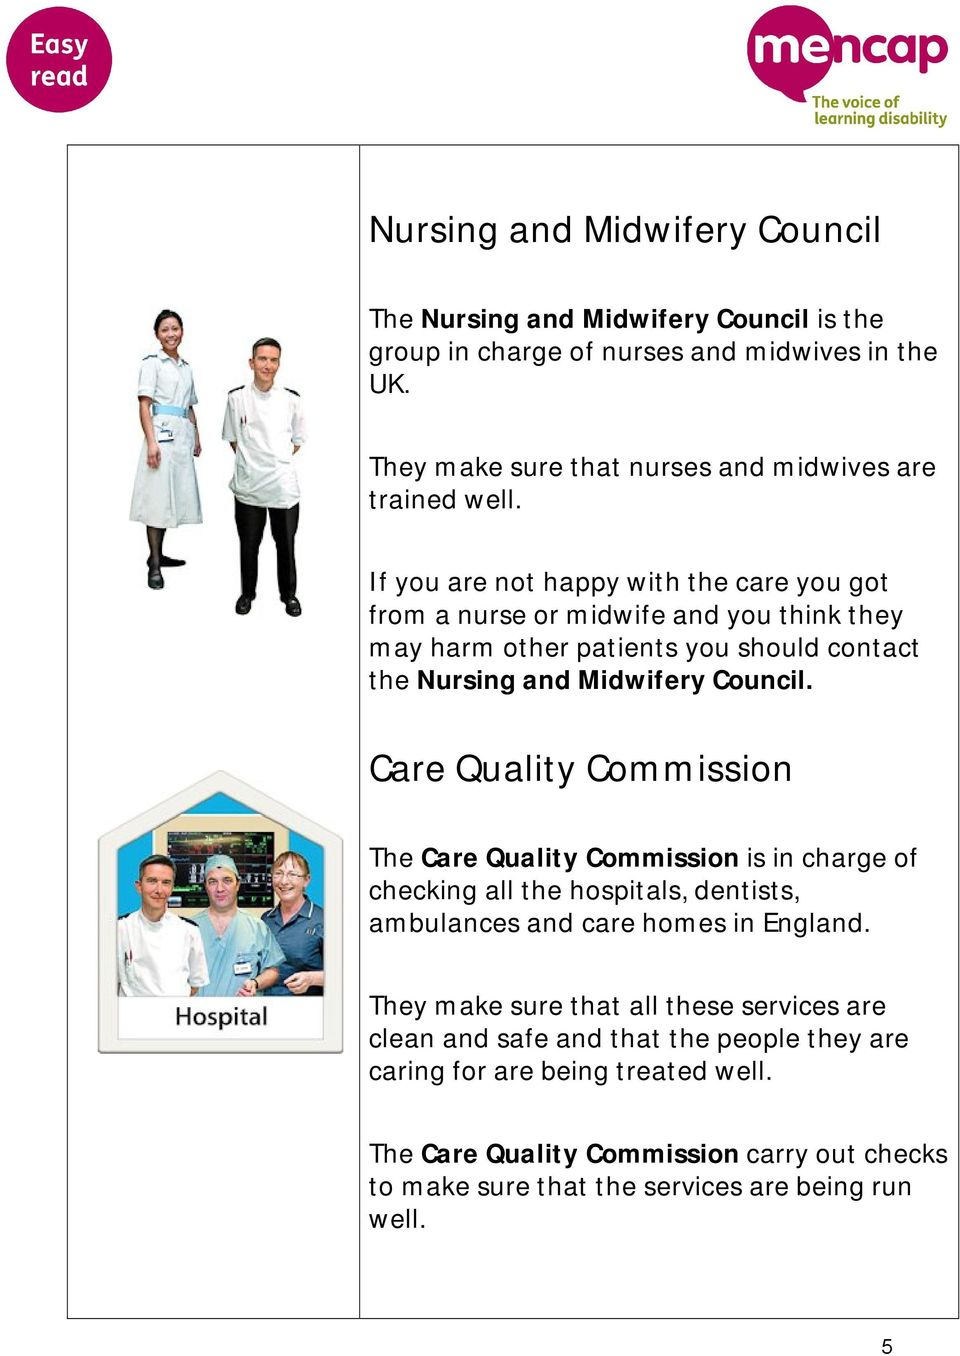 from a nurse or midwife and you think they may harm other patients you should contact the Nursing and Midwifery Council.